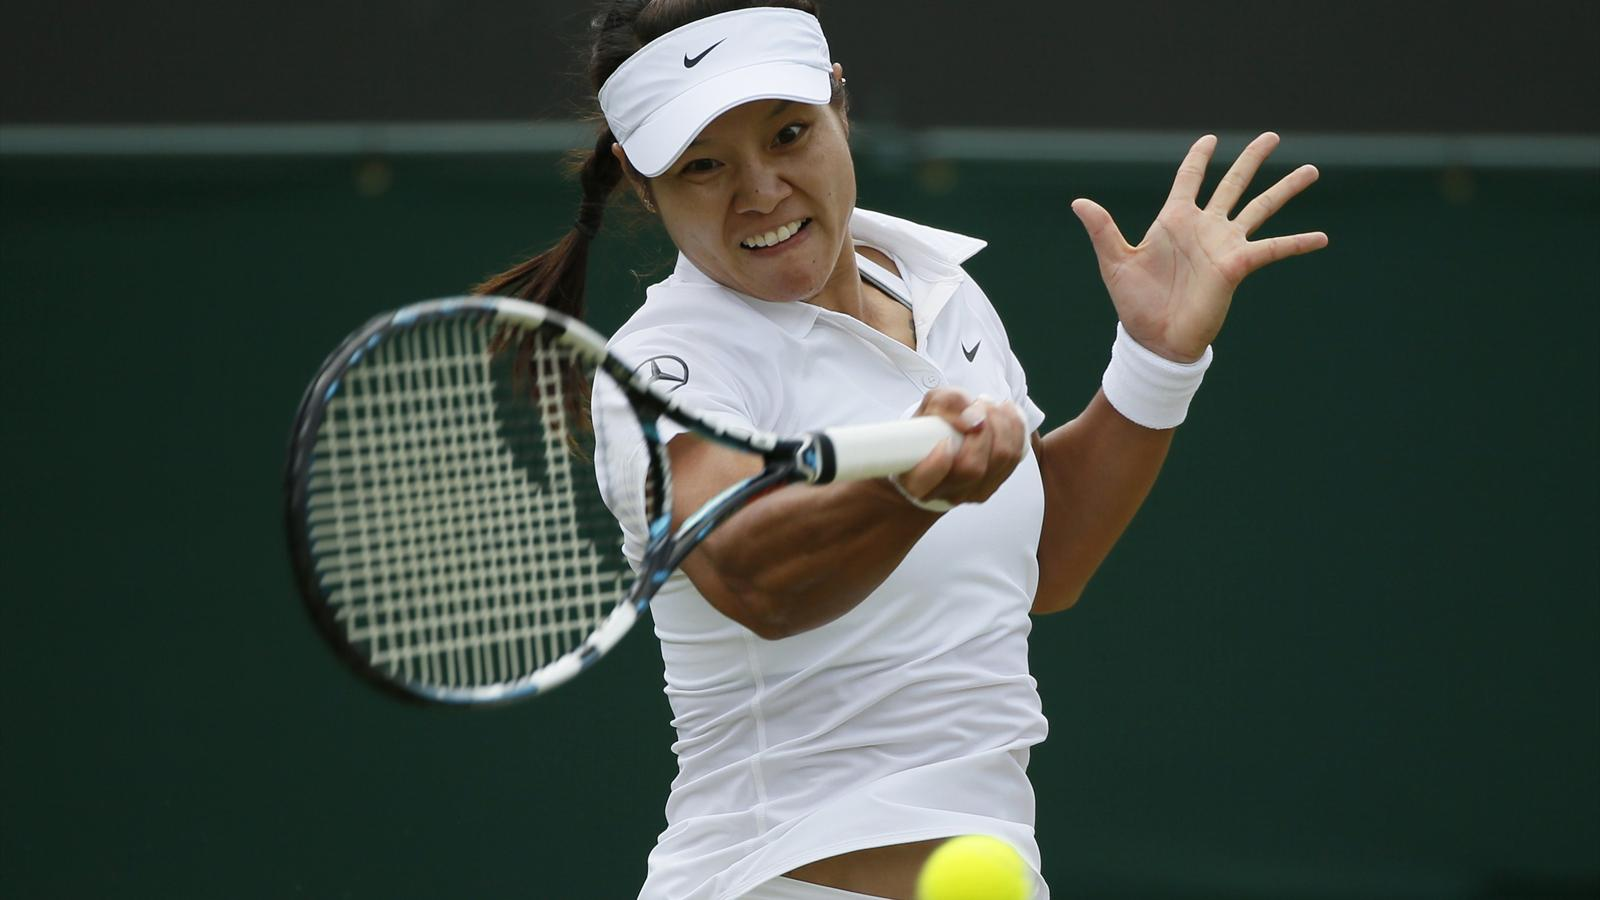 Li Na of China hits a return to Yvonne Meusburger of Austria in their women's singles match at Wimbledon (Reuters)